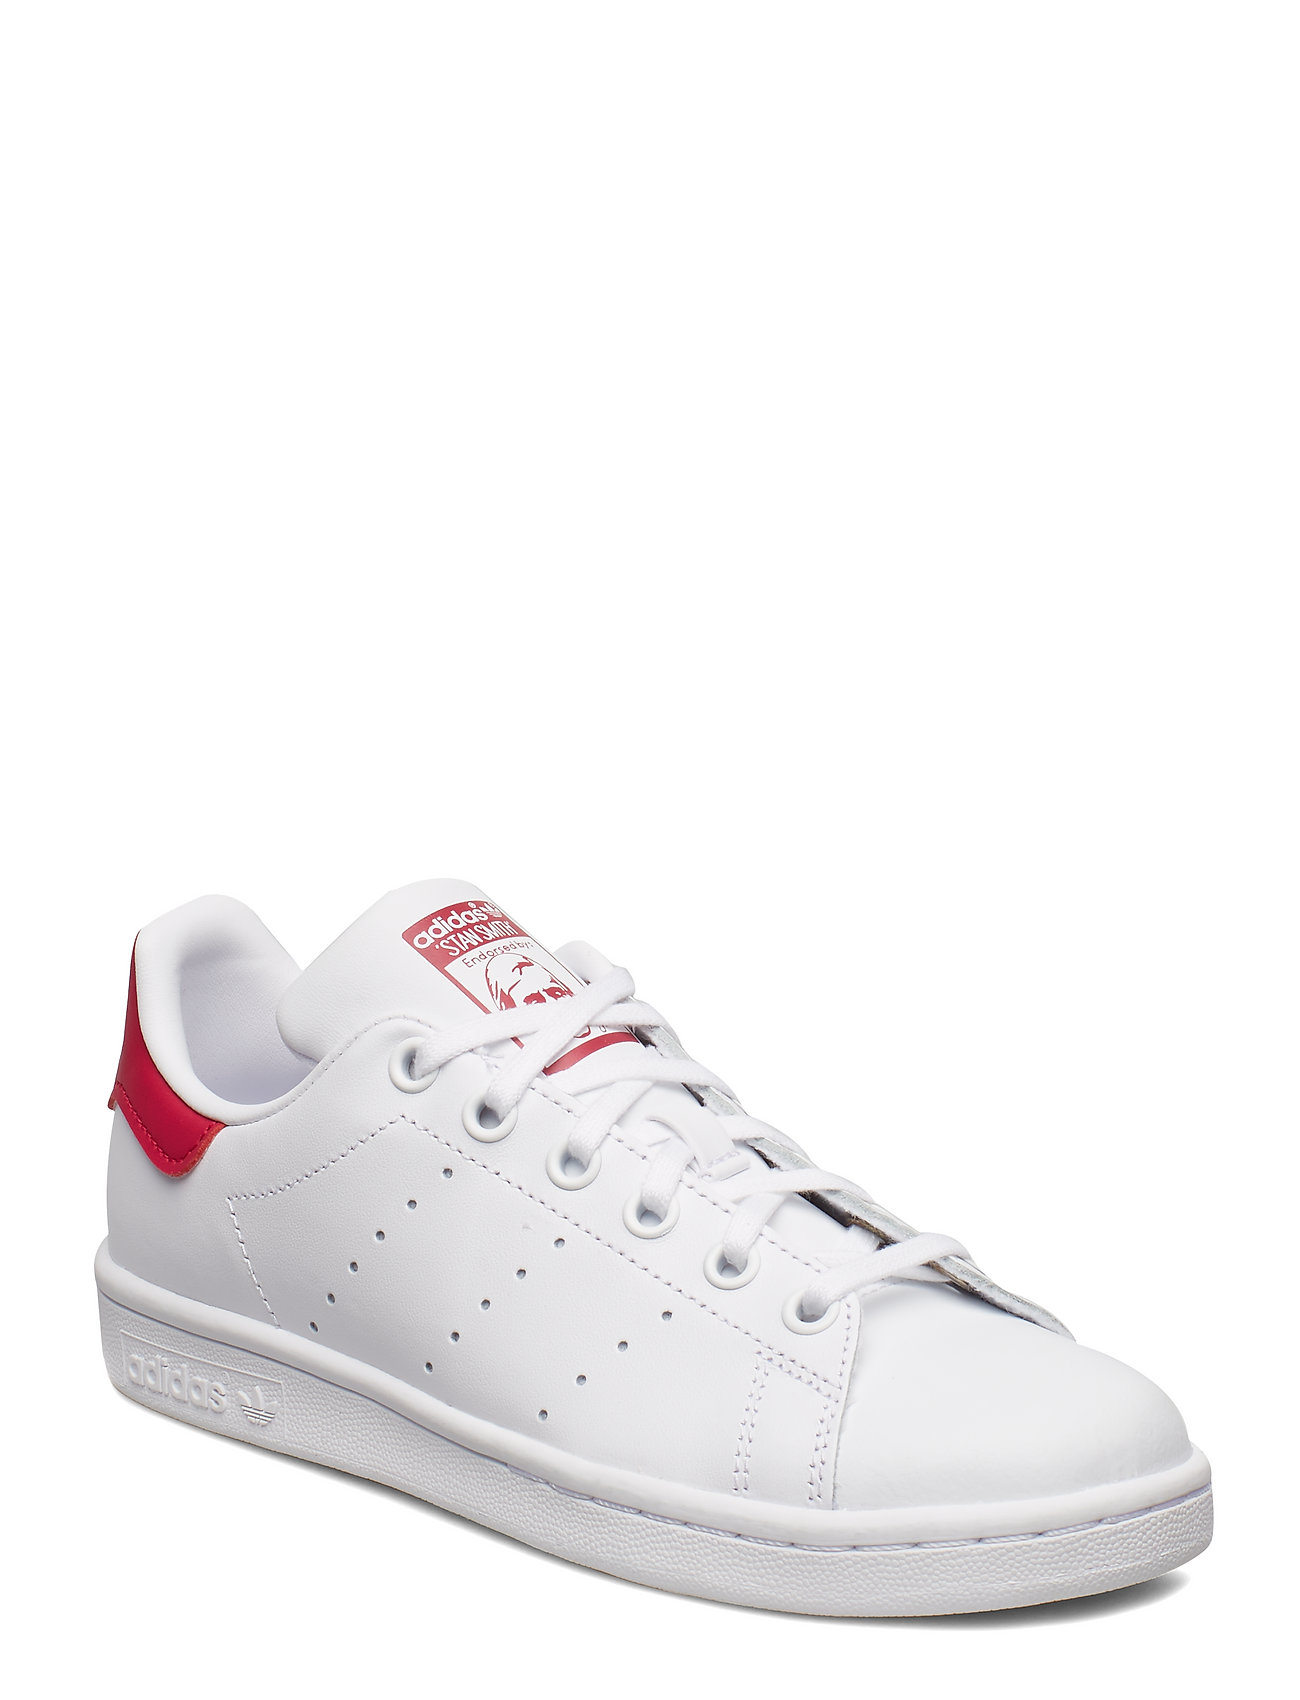 adidas Originals STAN SMITH J - FTWWHT/FTWWHT/BOPINK